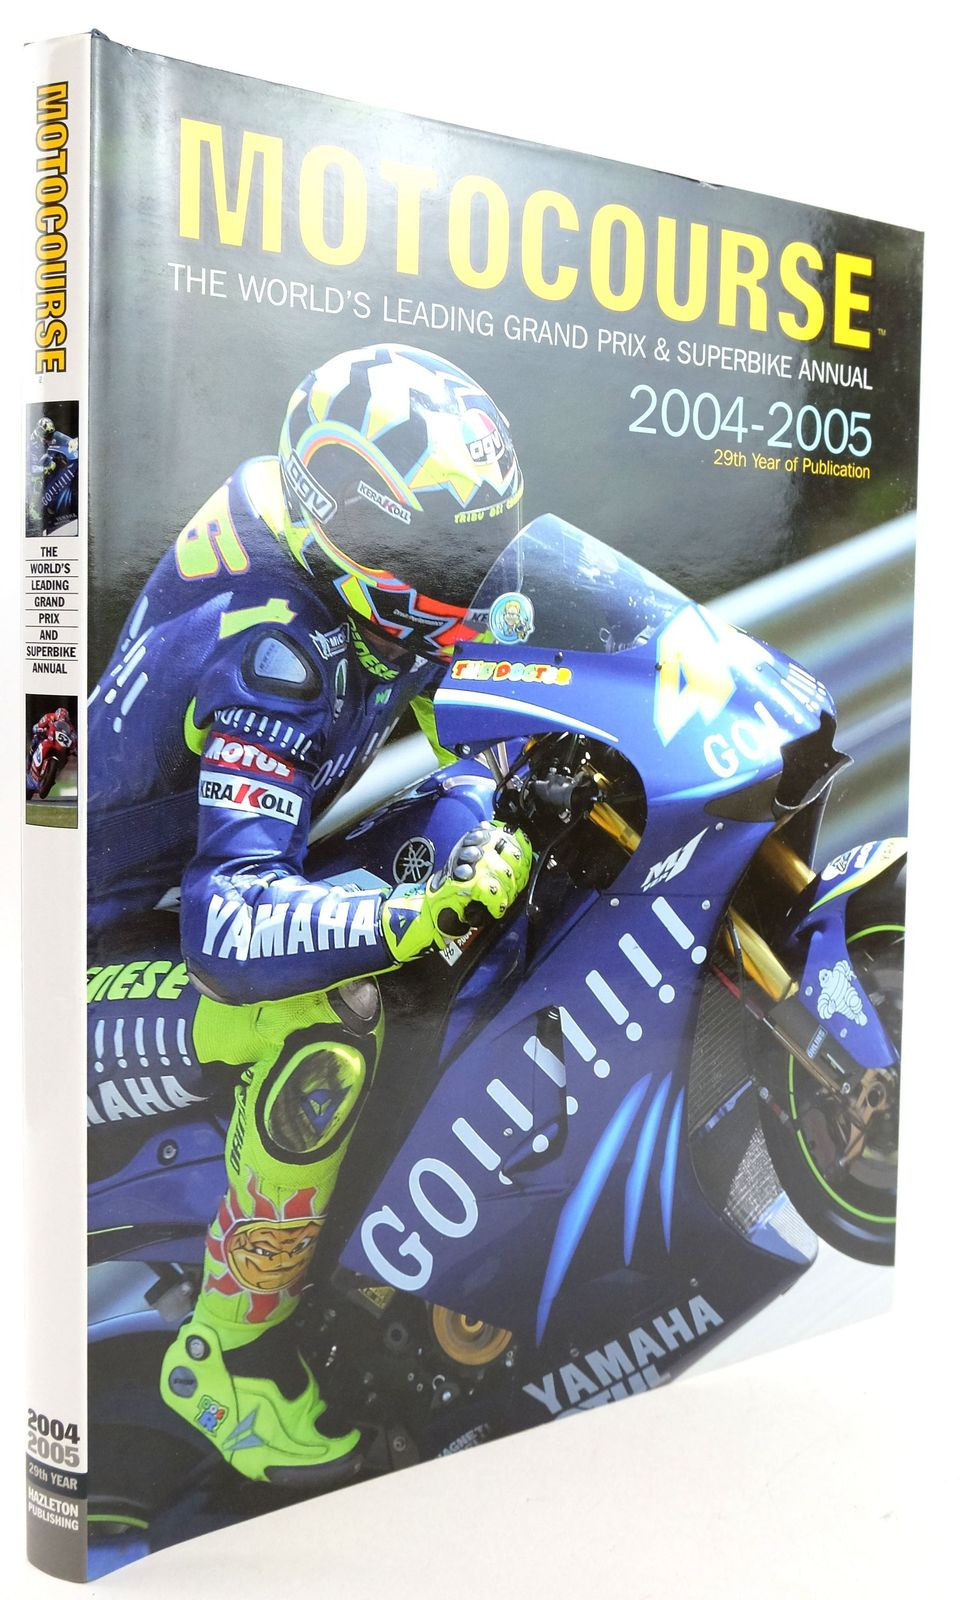 Photo of MOTOCOURSE 2004-2005 published by Hazleton Publishing (STOCK CODE: 1819878)  for sale by Stella & Rose's Books